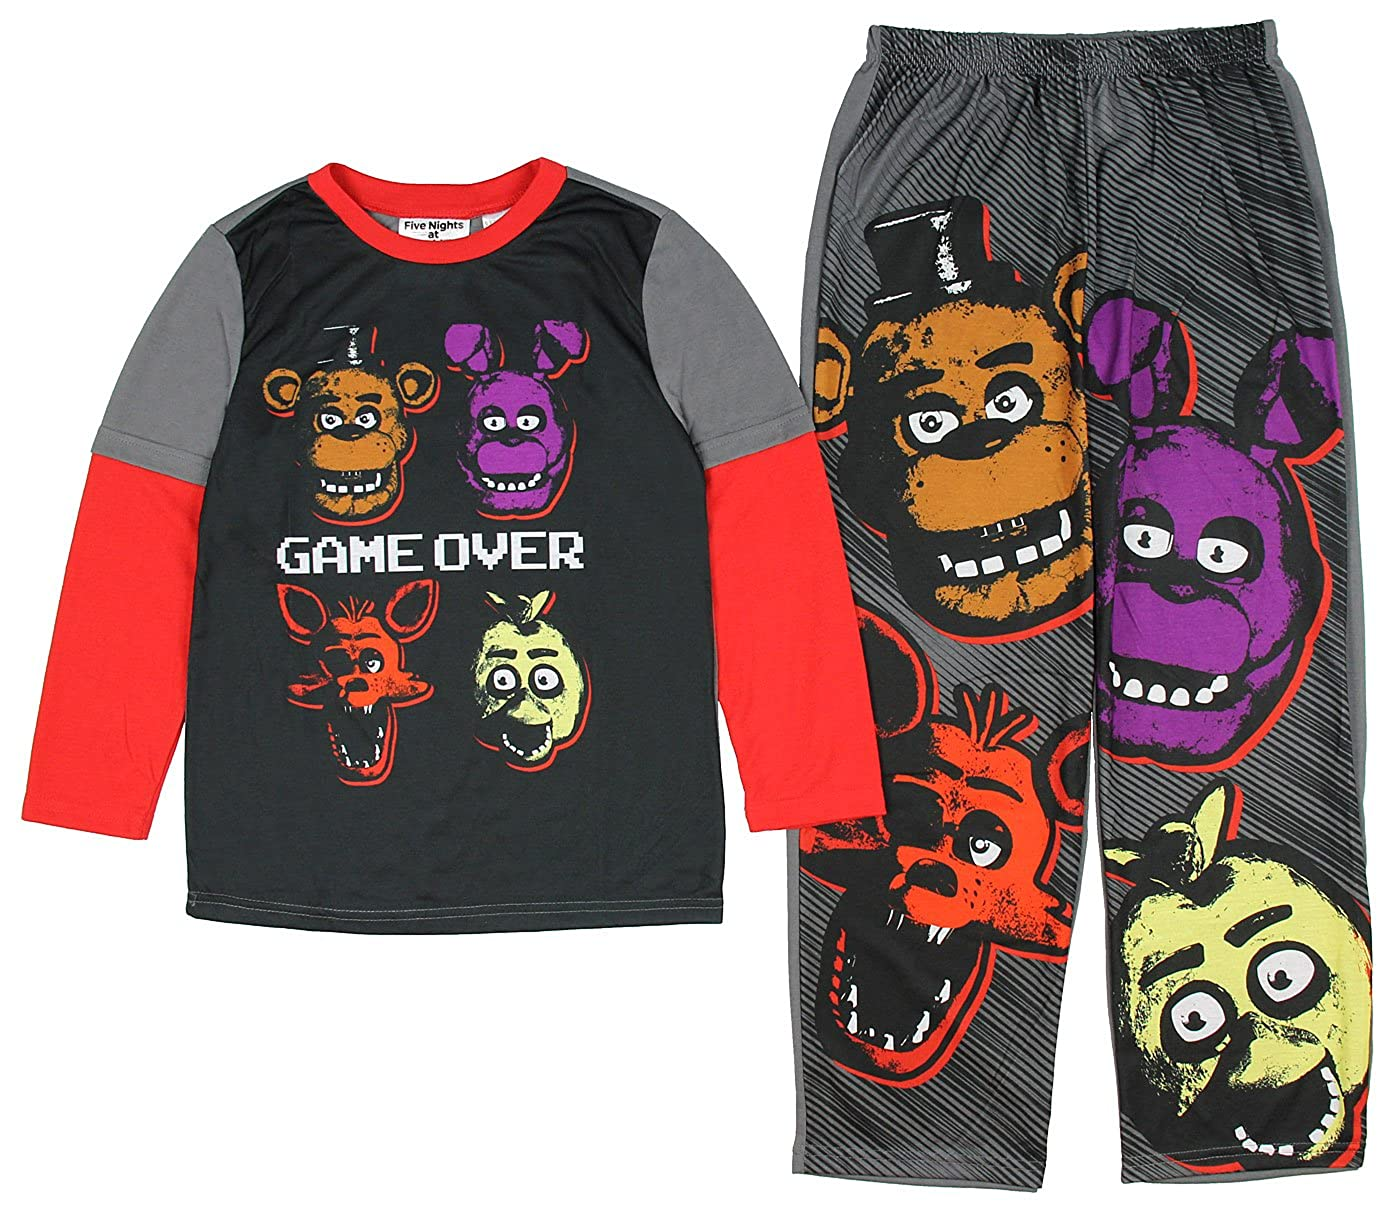 bioworld Five Nights at Freddy's Game Over Four Heads Two Piece Youth Pajama Set